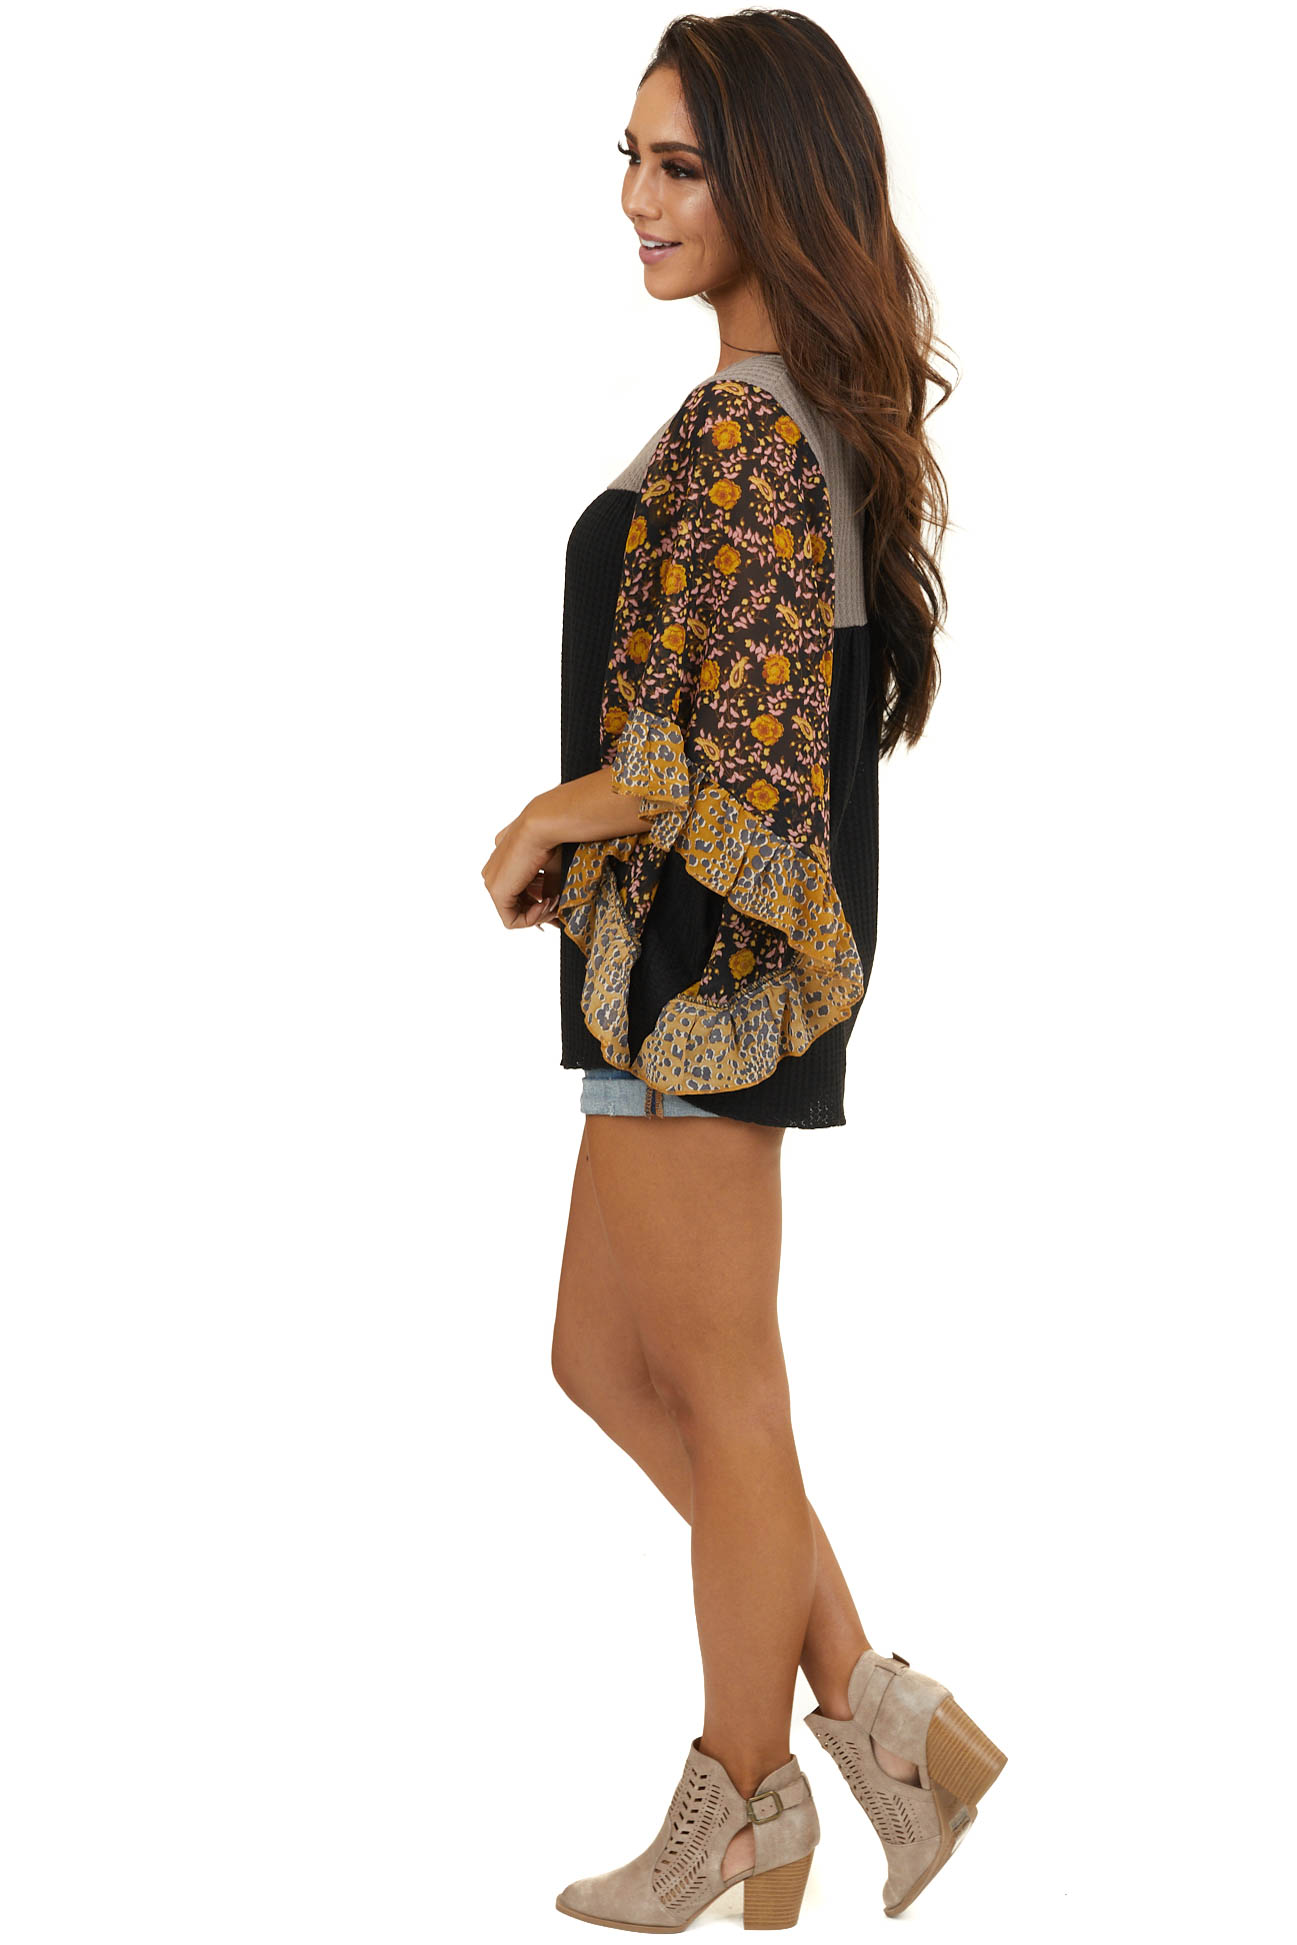 Black and Taupe Waffle Knit Top with Sheer Floral Sleeves